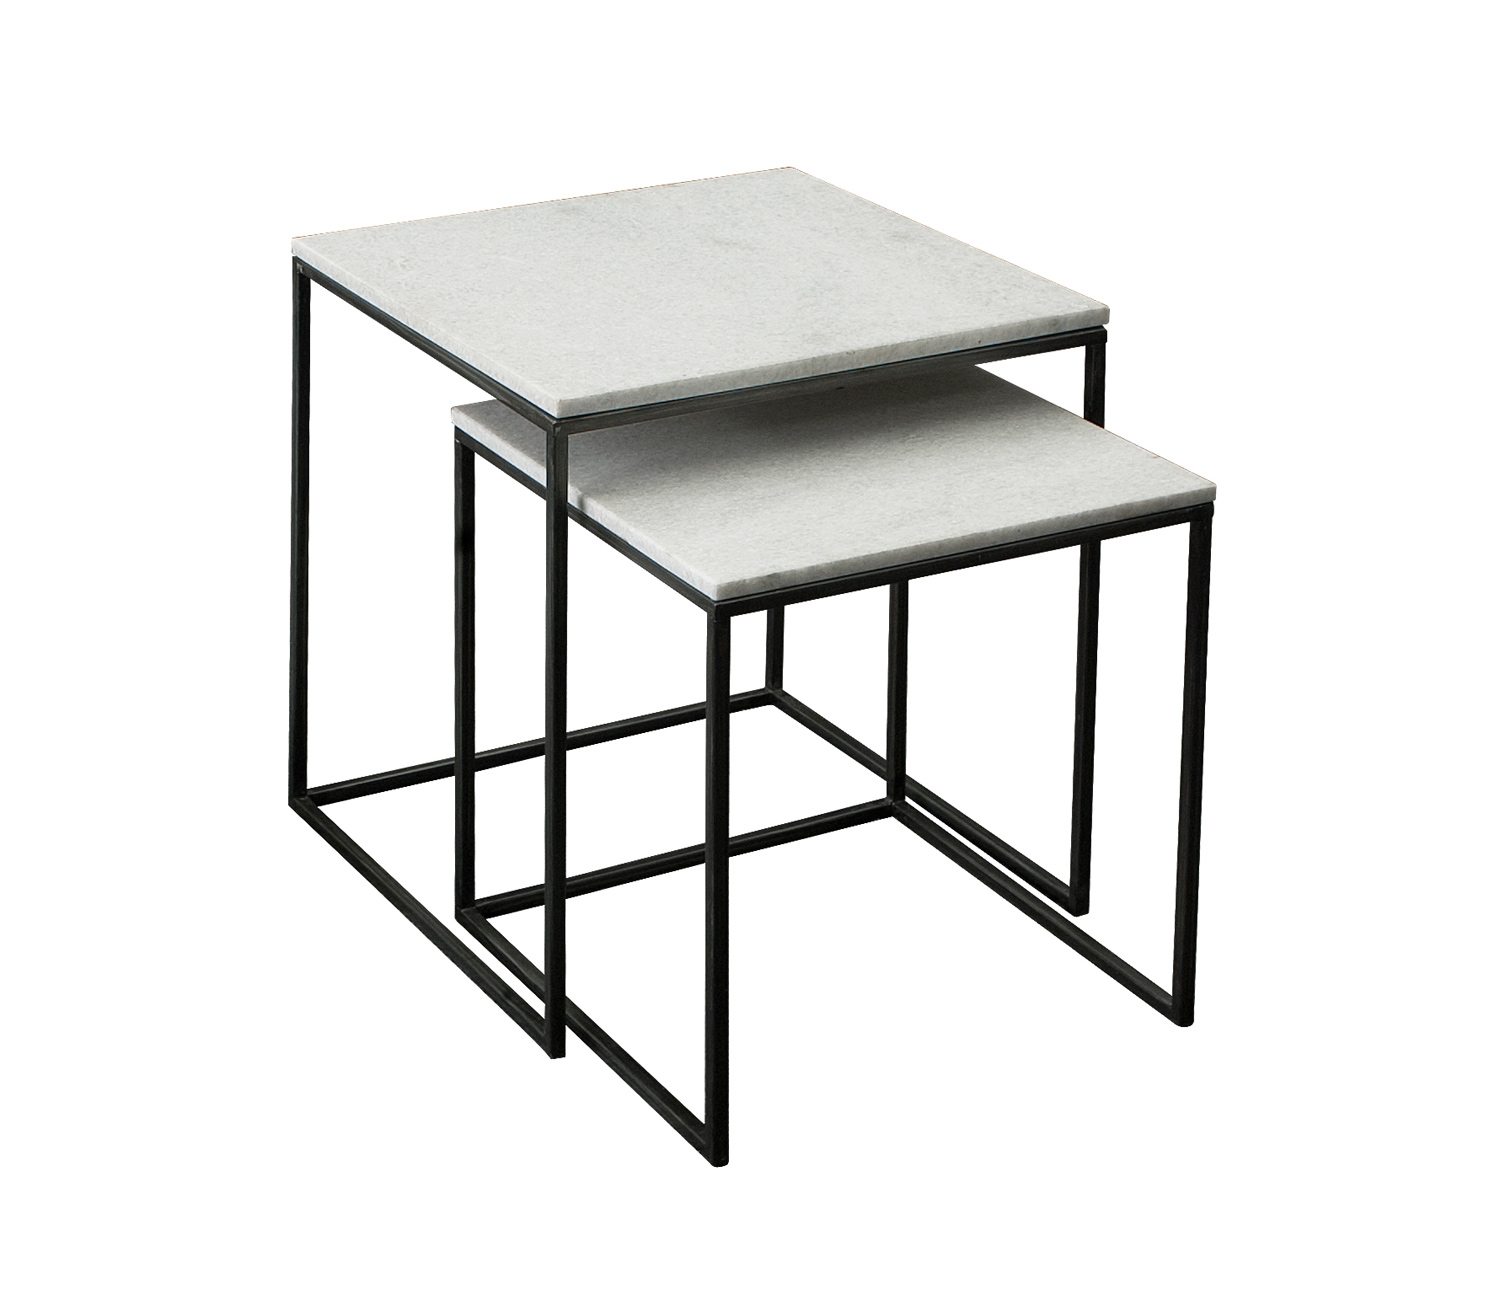 Coast To Coast 79700 Nesting Tables CTC 79700 At Homelement.com. Full resolution  image, nominally Width 1500 Height 1295 pixels, image with #5A715A.